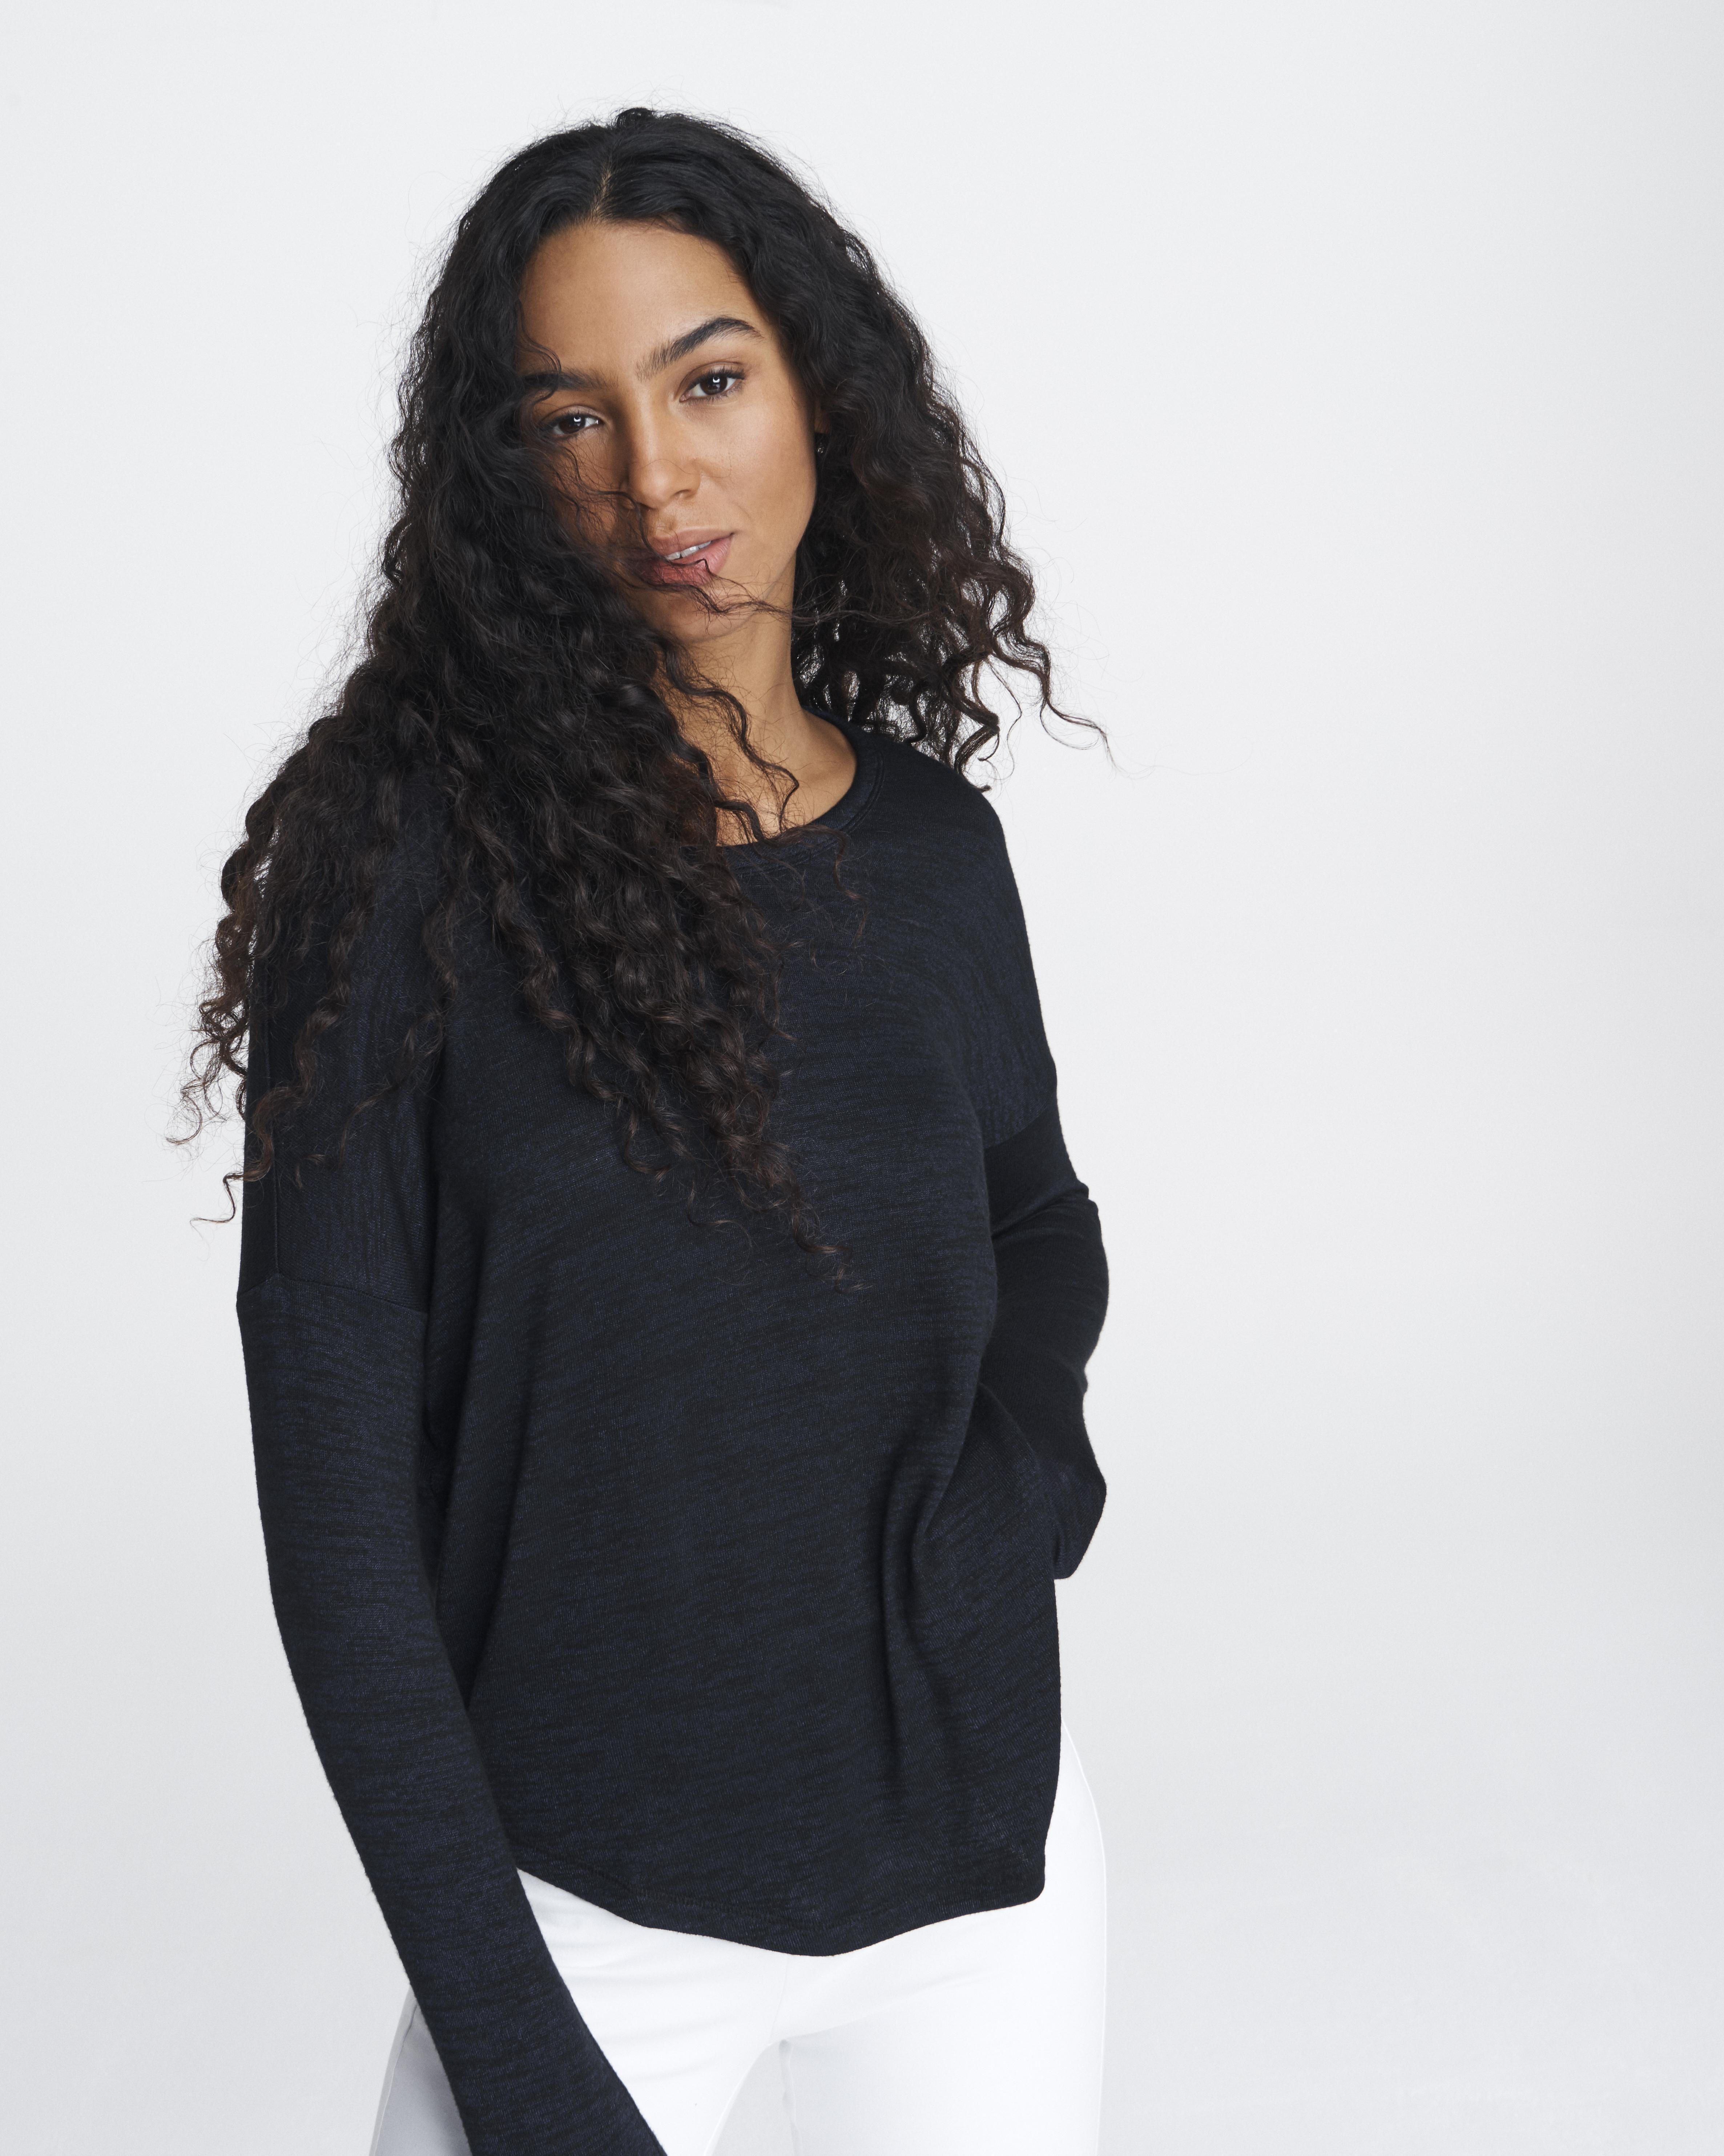 The knit tee